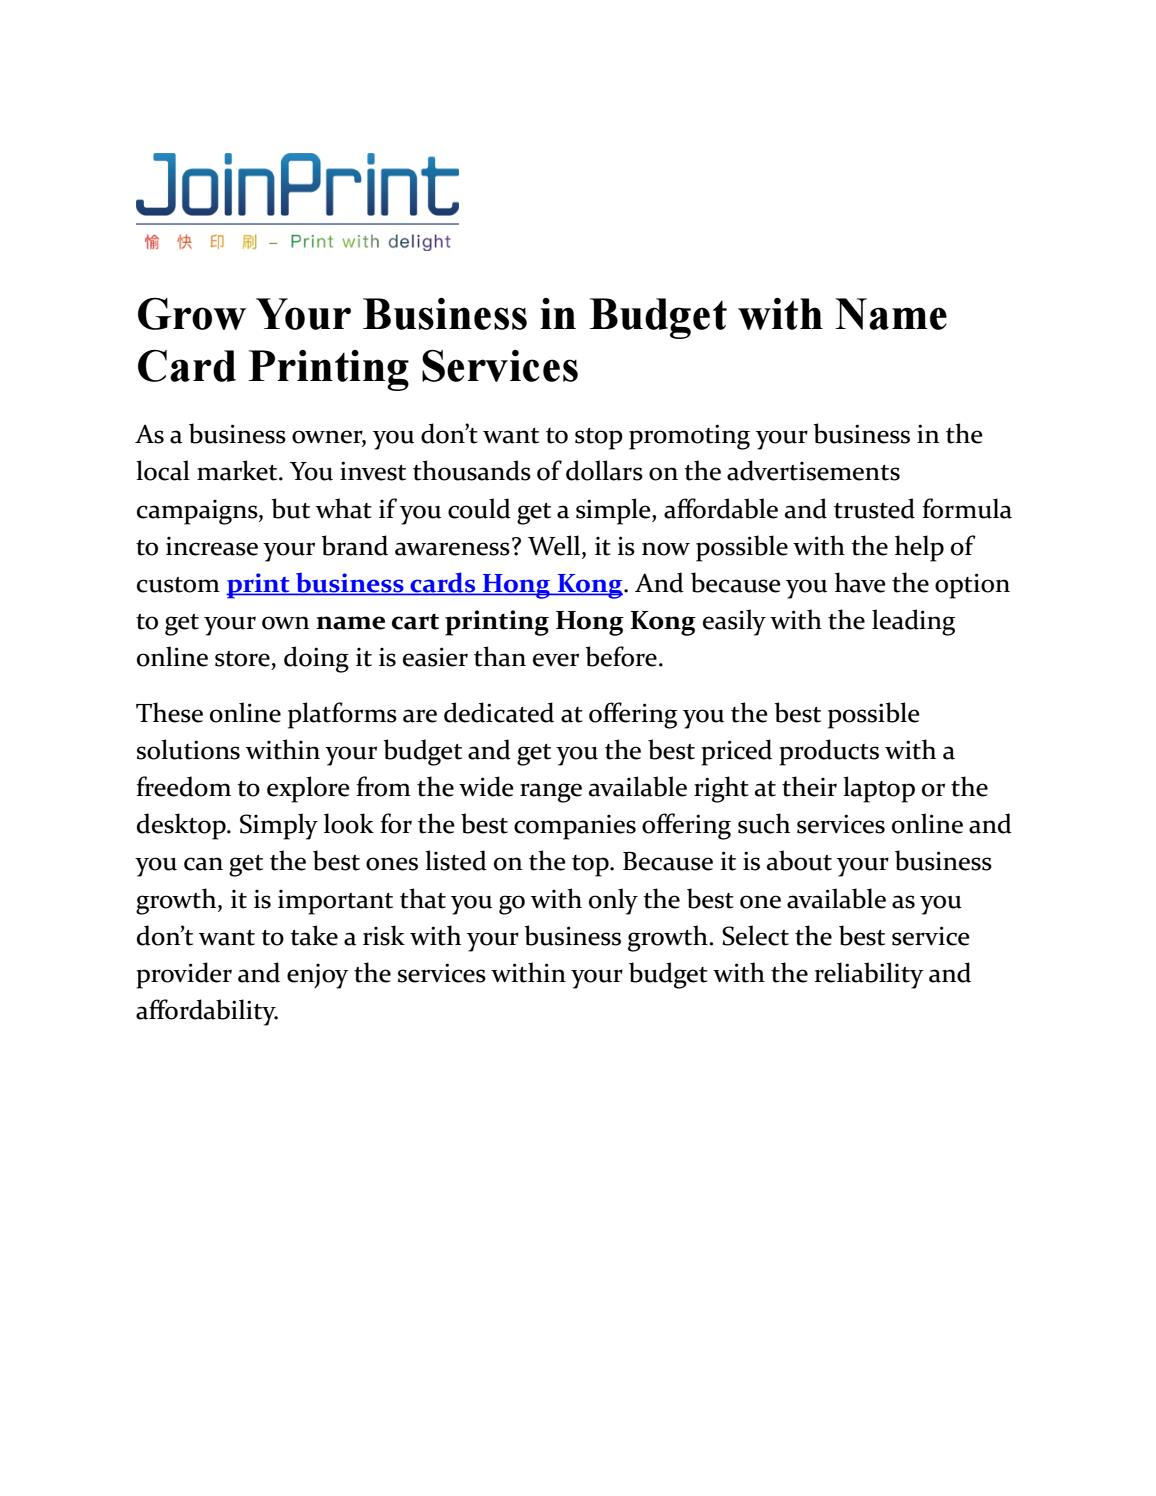 Grow your business in budget with name card printing services by grow your business in budget with name card printing services by joinprint issuu reheart Images